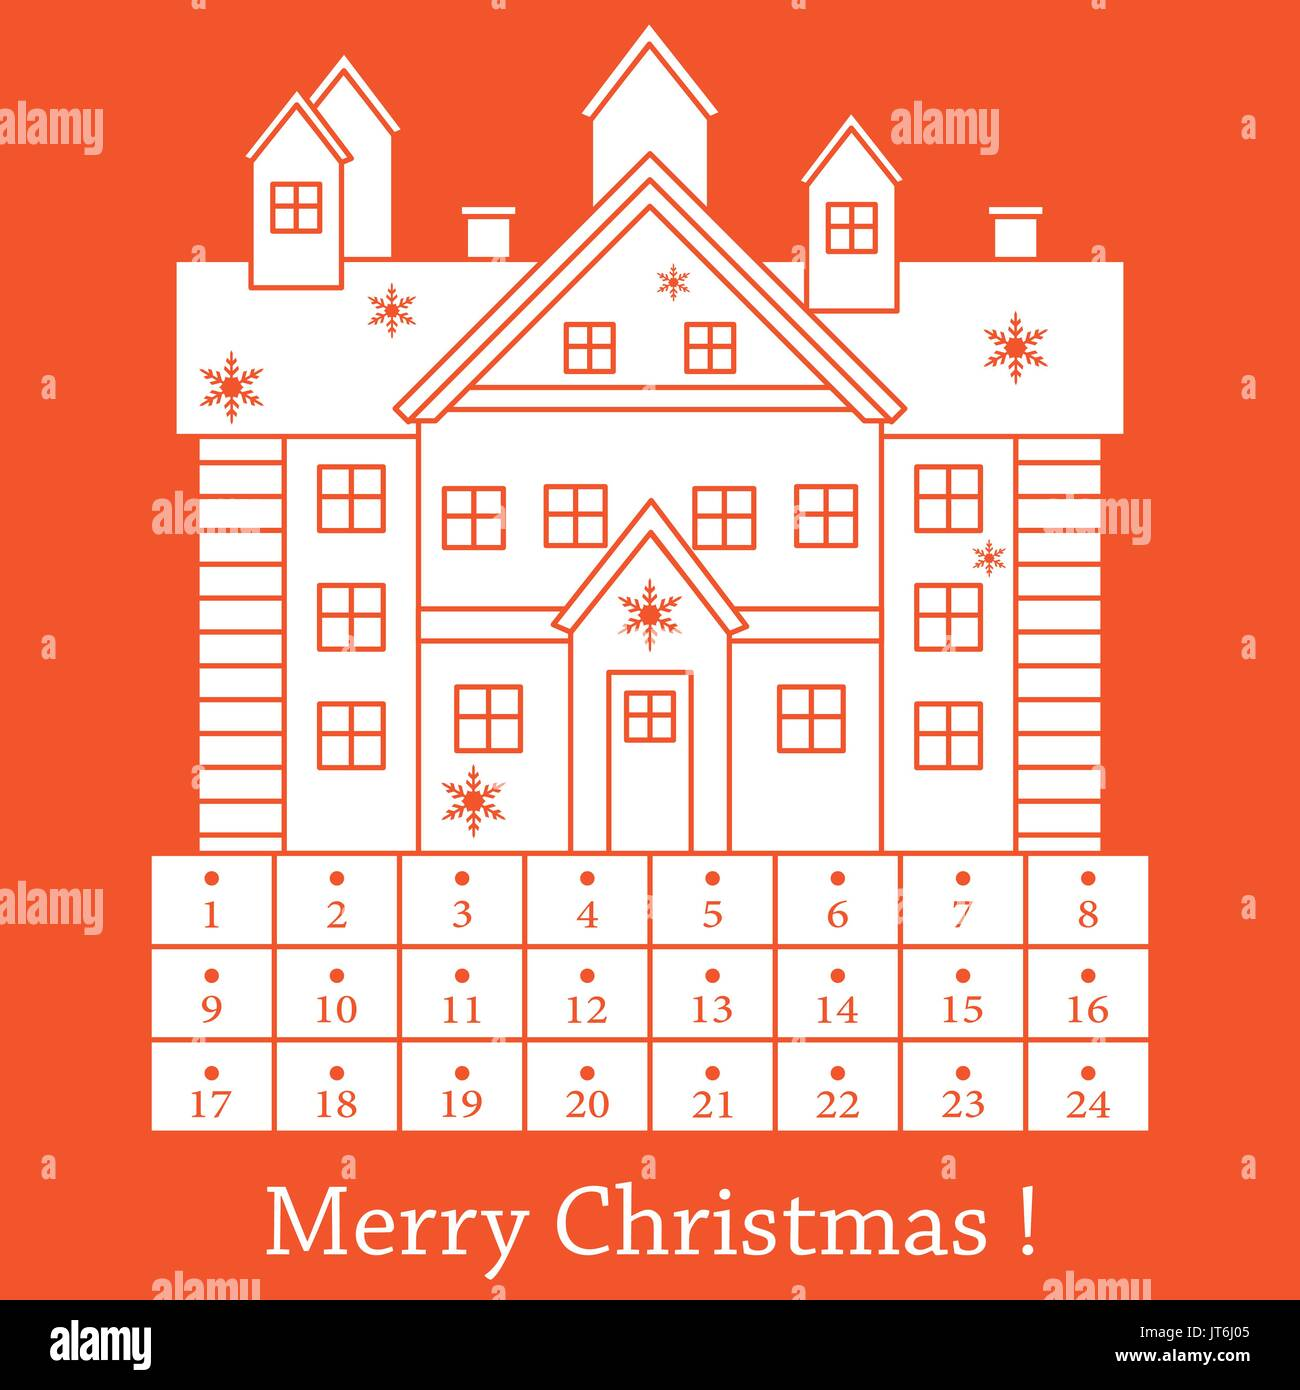 Christmas Calendar Illustration : Advent calendar window stock photos